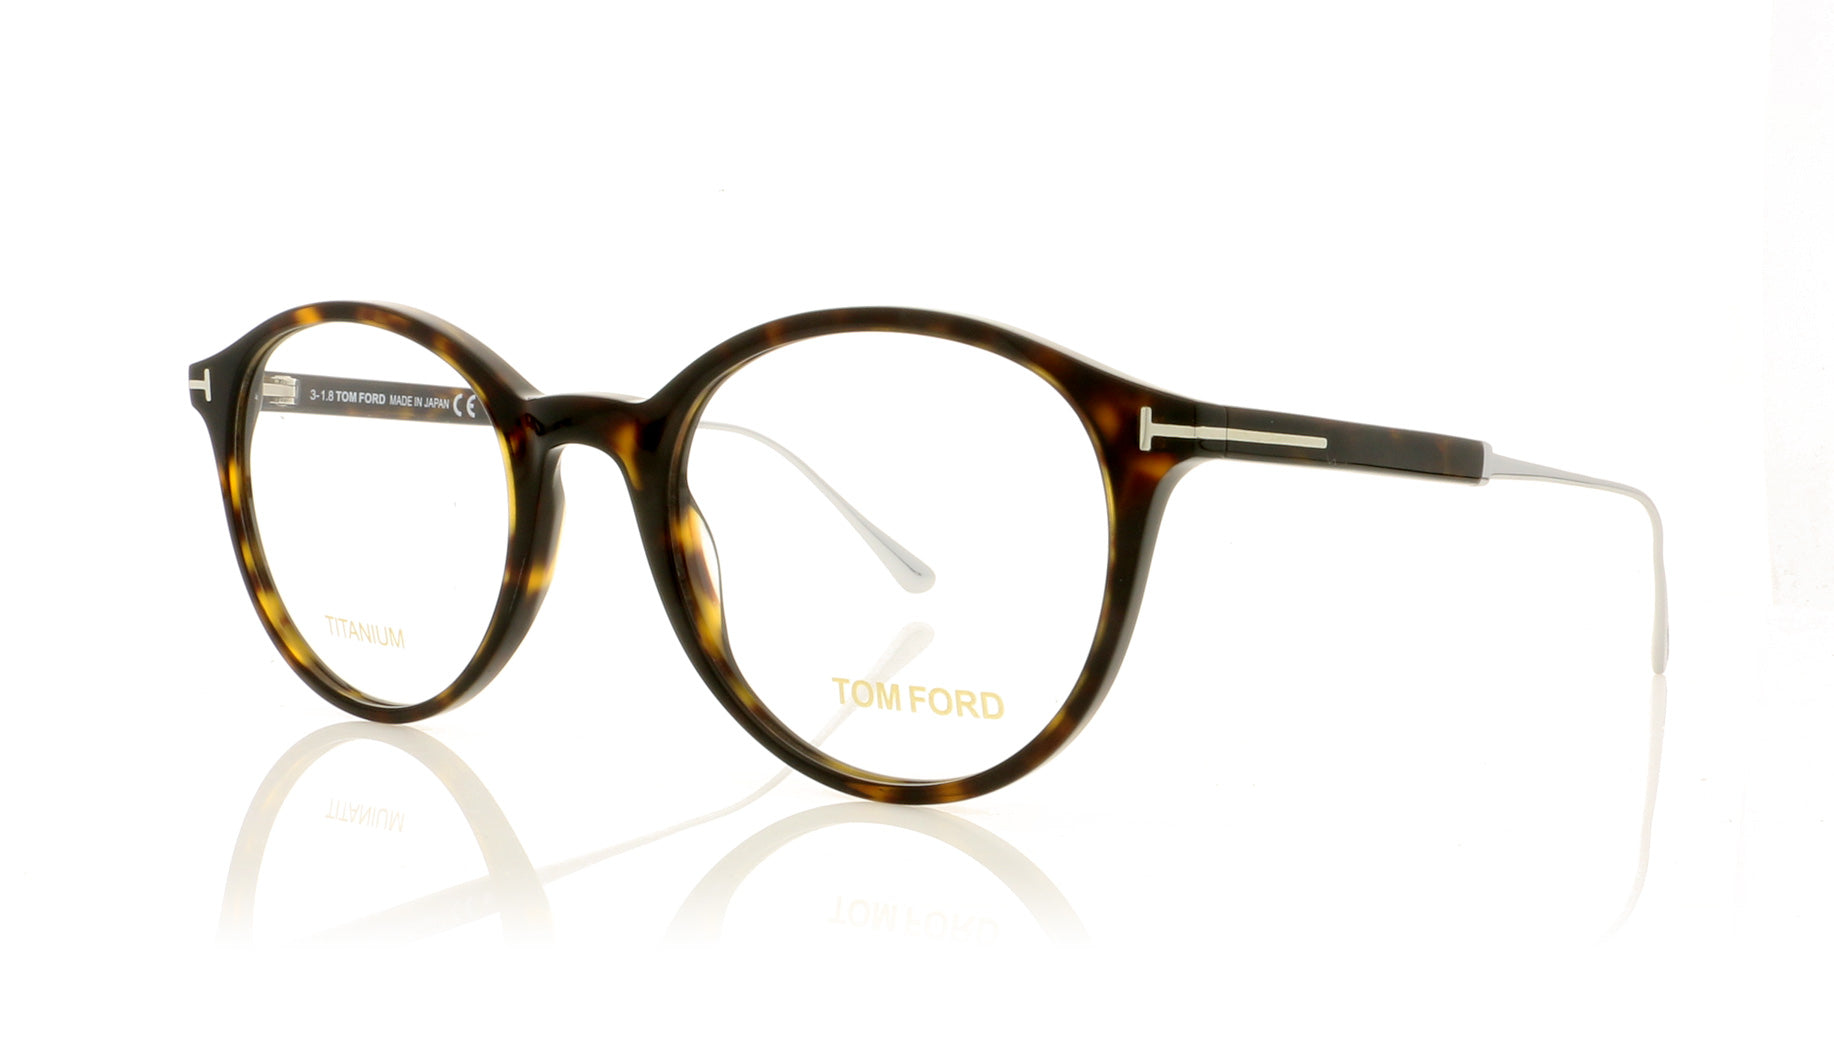 a2d5c1068cd6 Tom Ford TF5485 052 Dark Havana Glasses